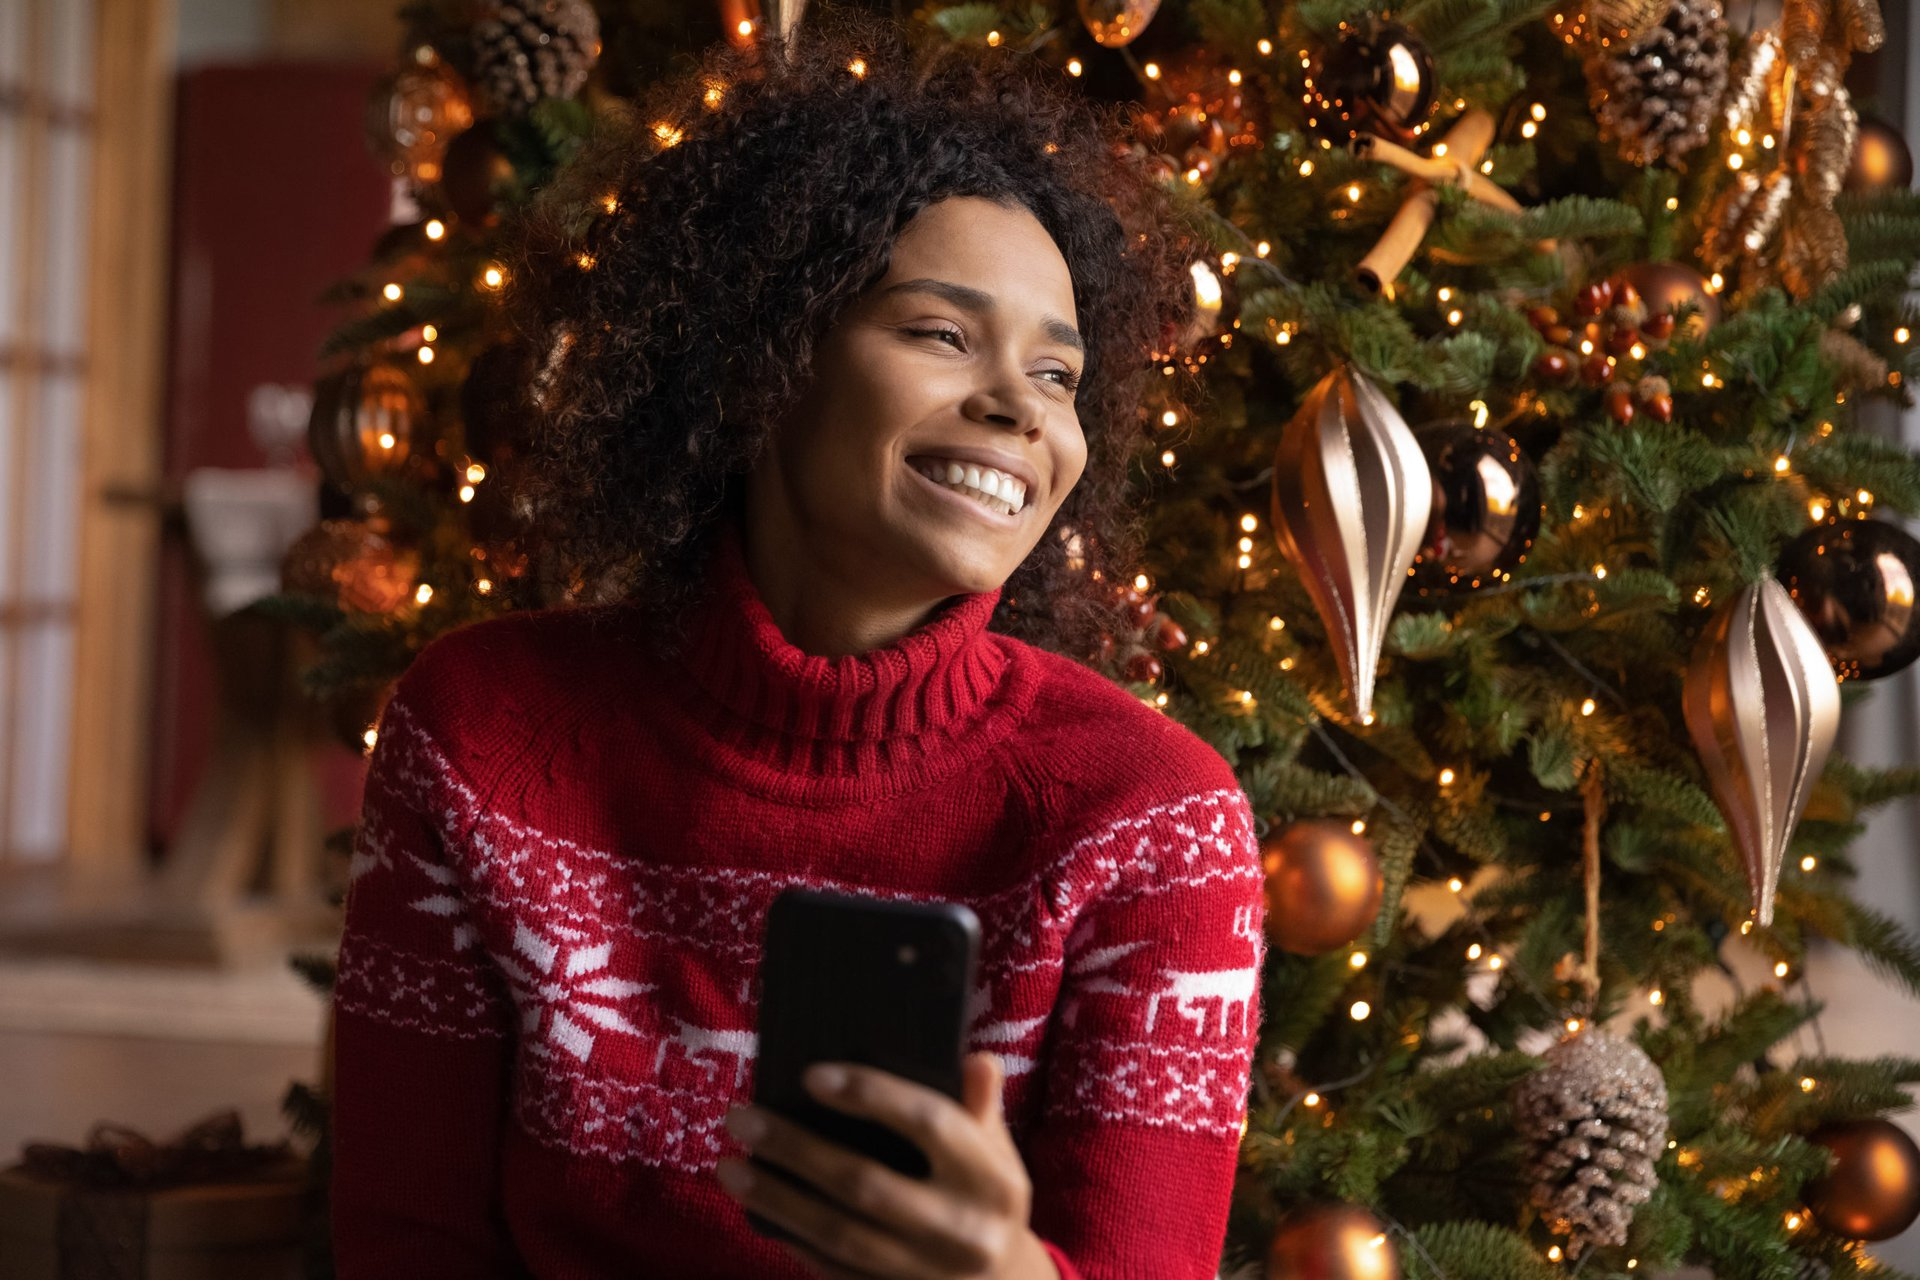 Woman happy with her new phone on Christmas